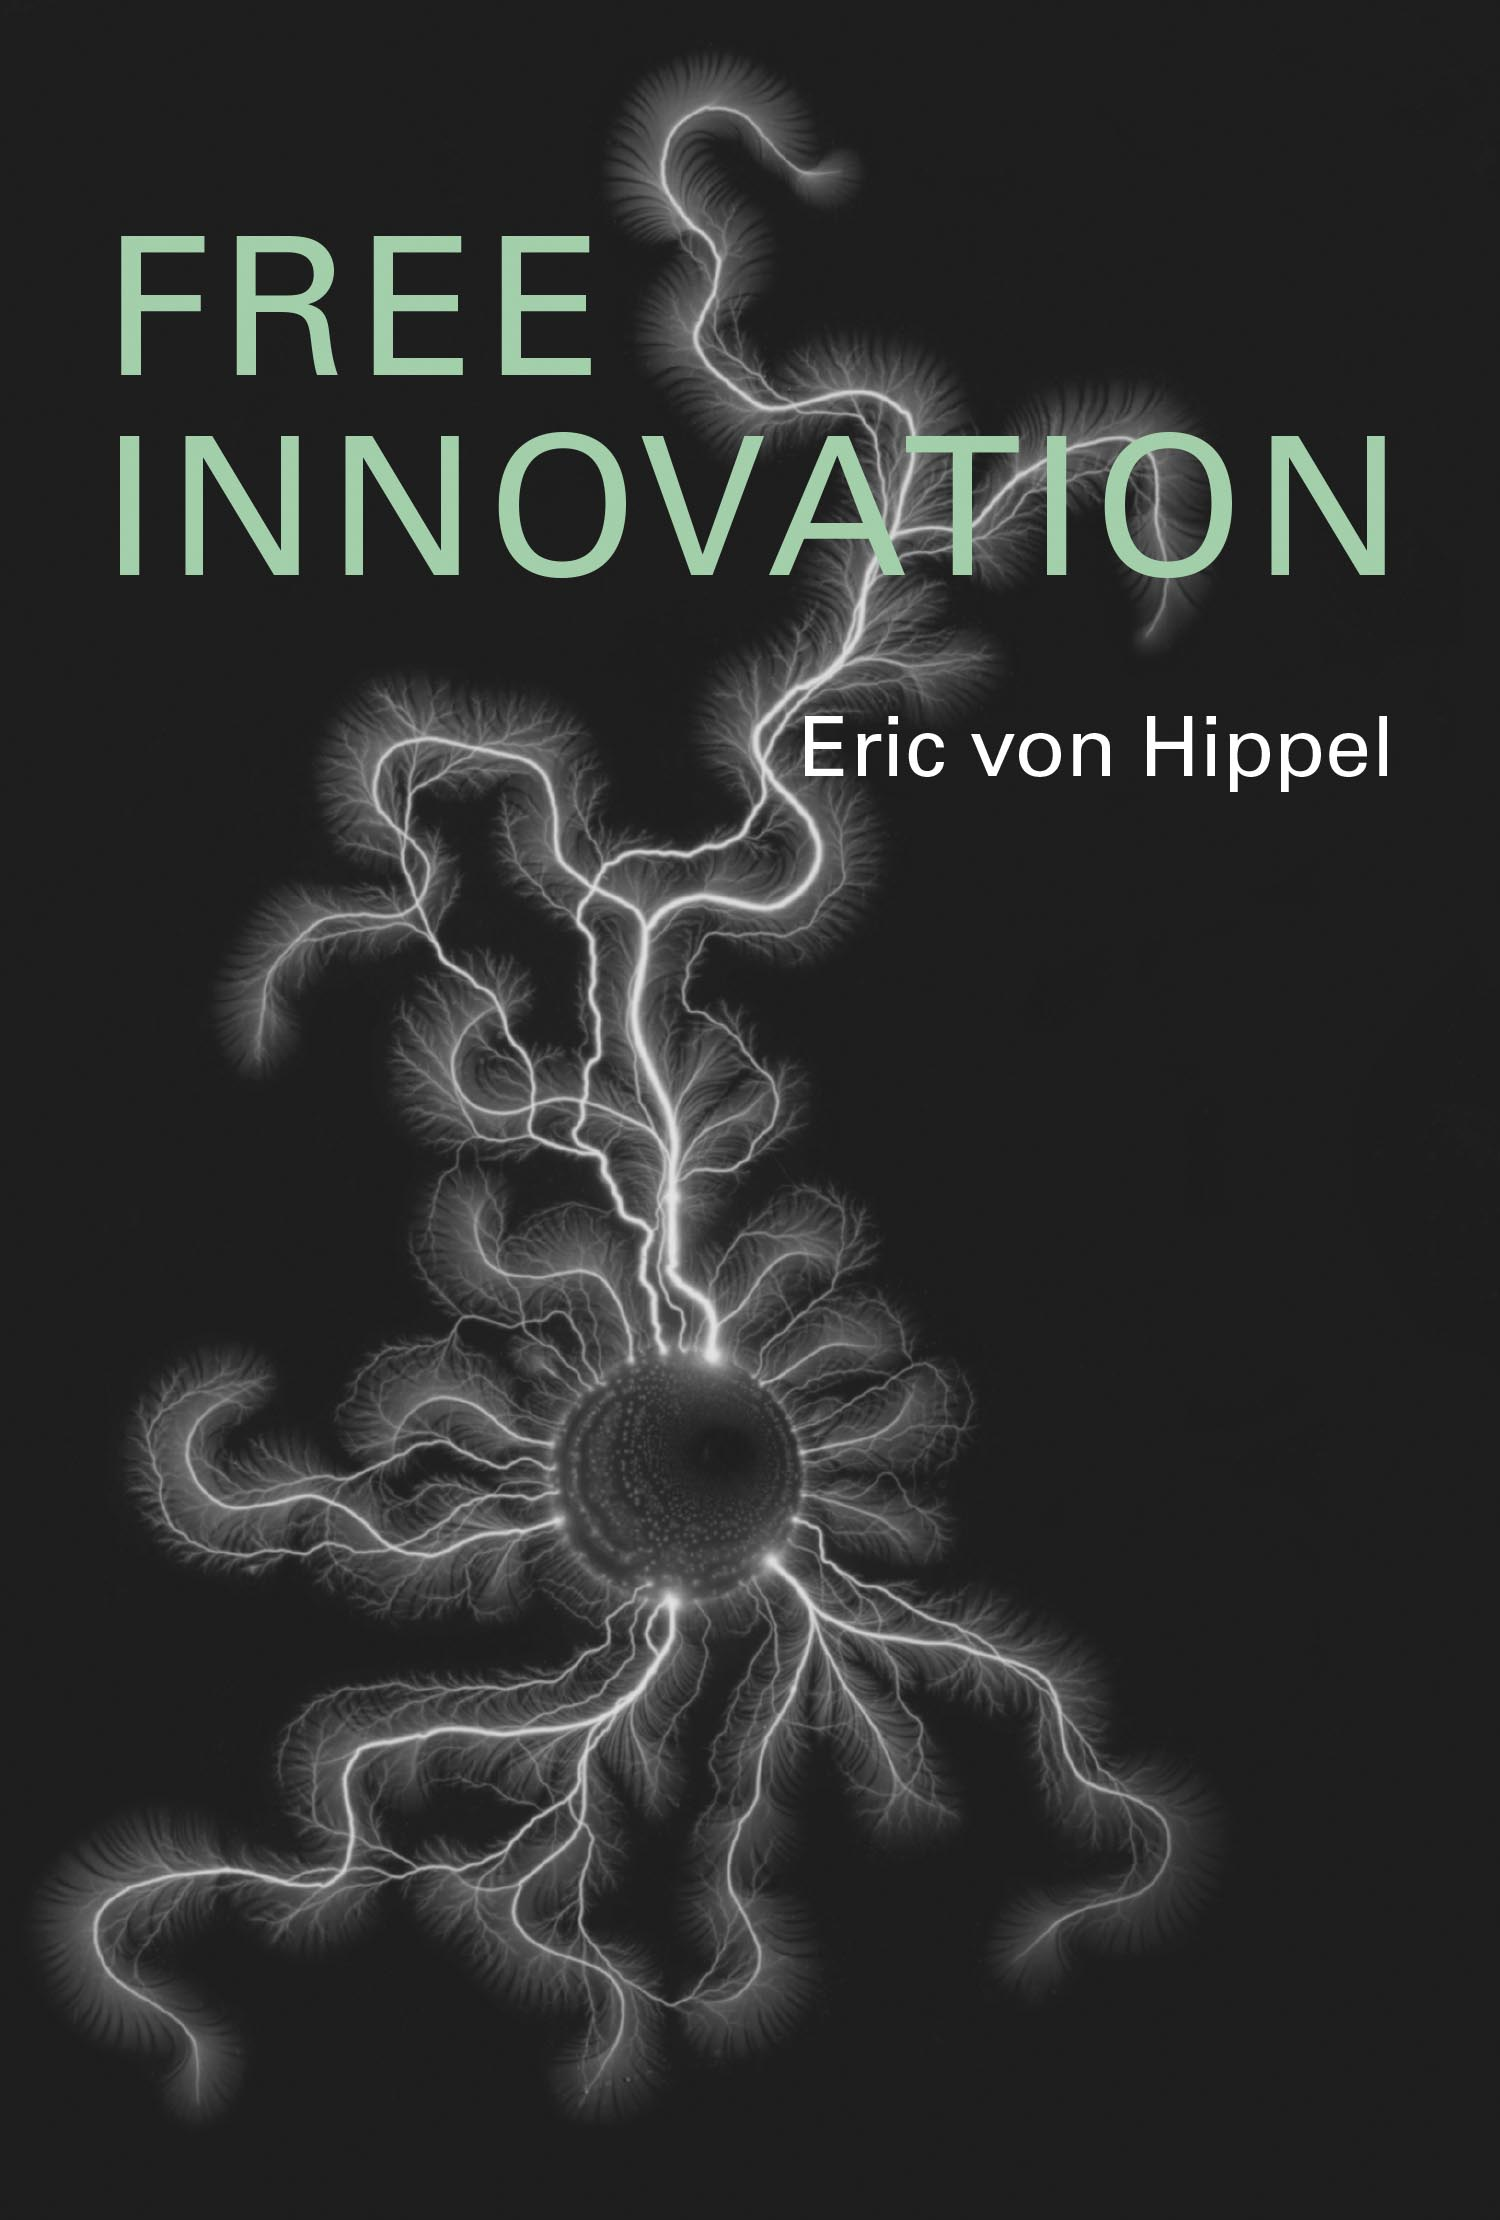 Cover of the book Free Innovation by Eric von Hippel